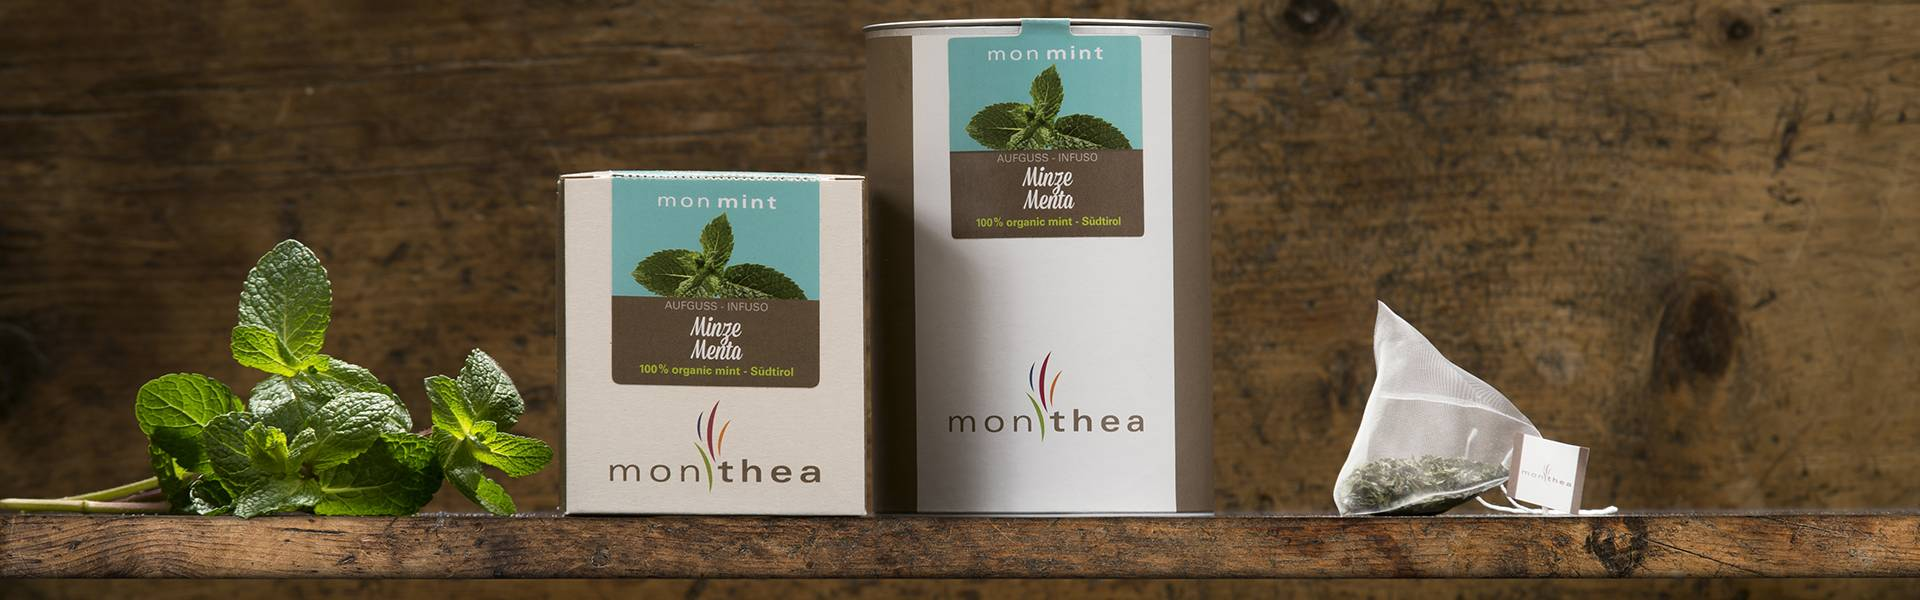 Organic mint tea monmint